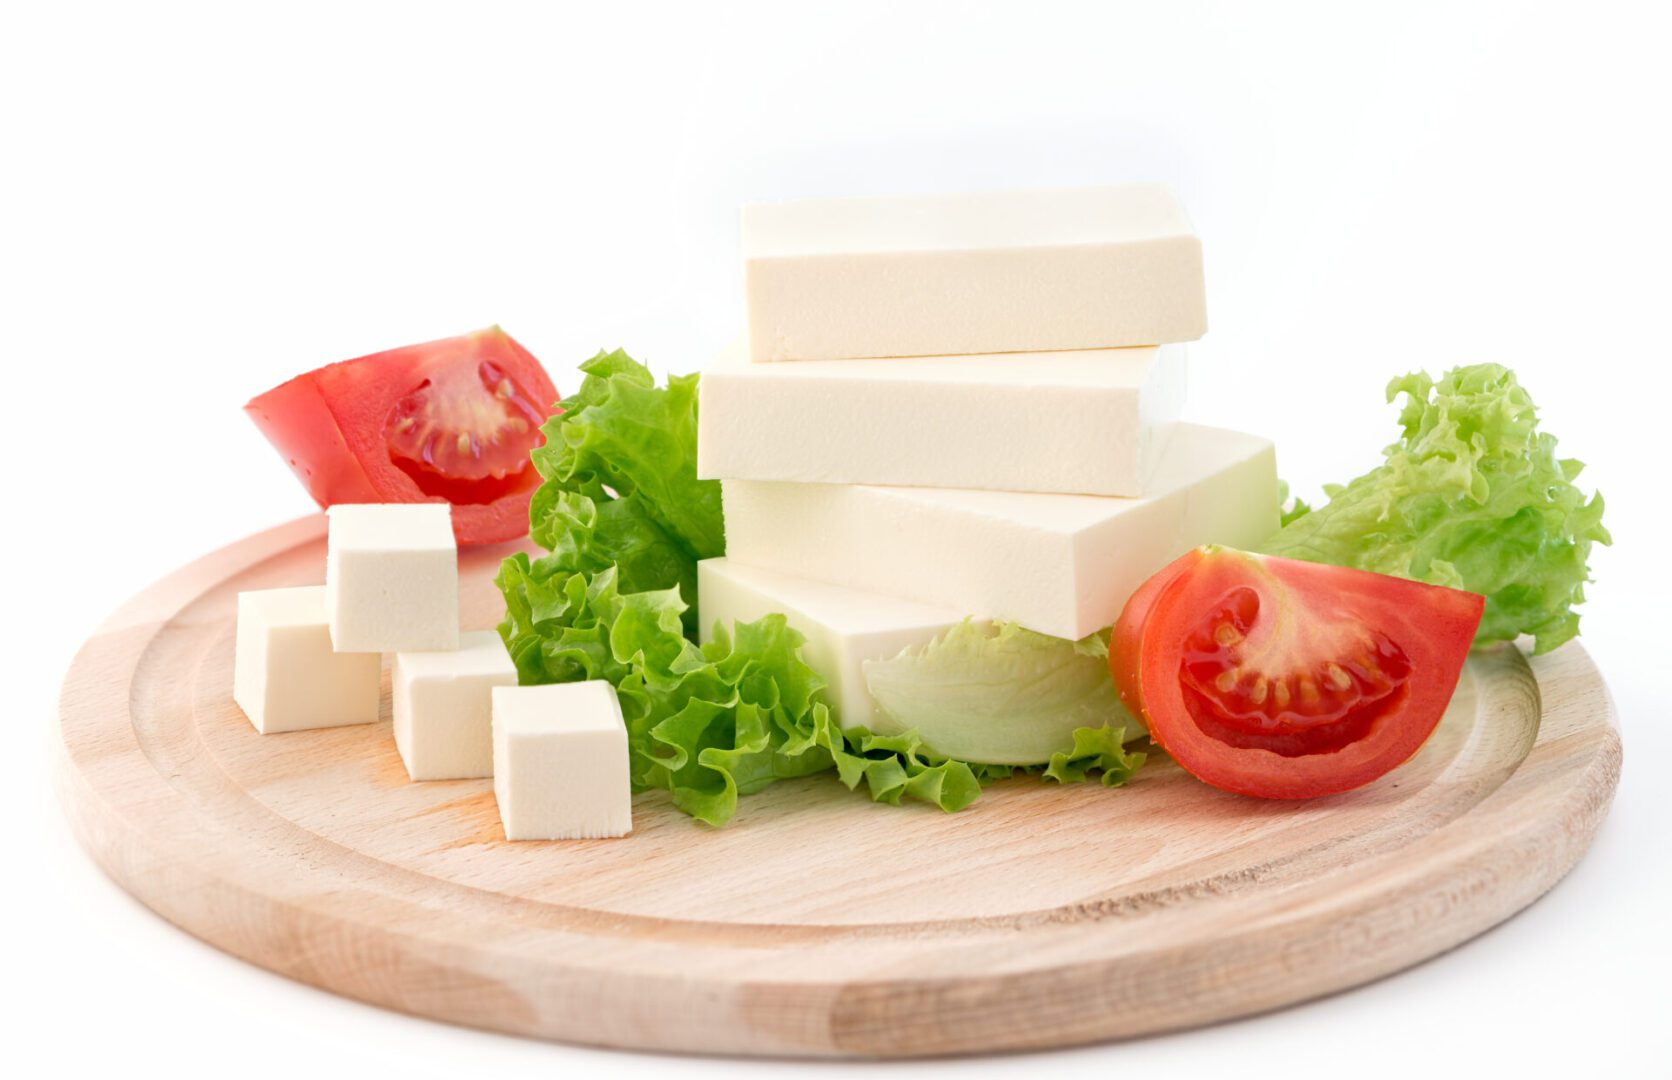 Sliced,Feta,Cheese,With,Salad,And,Tomato